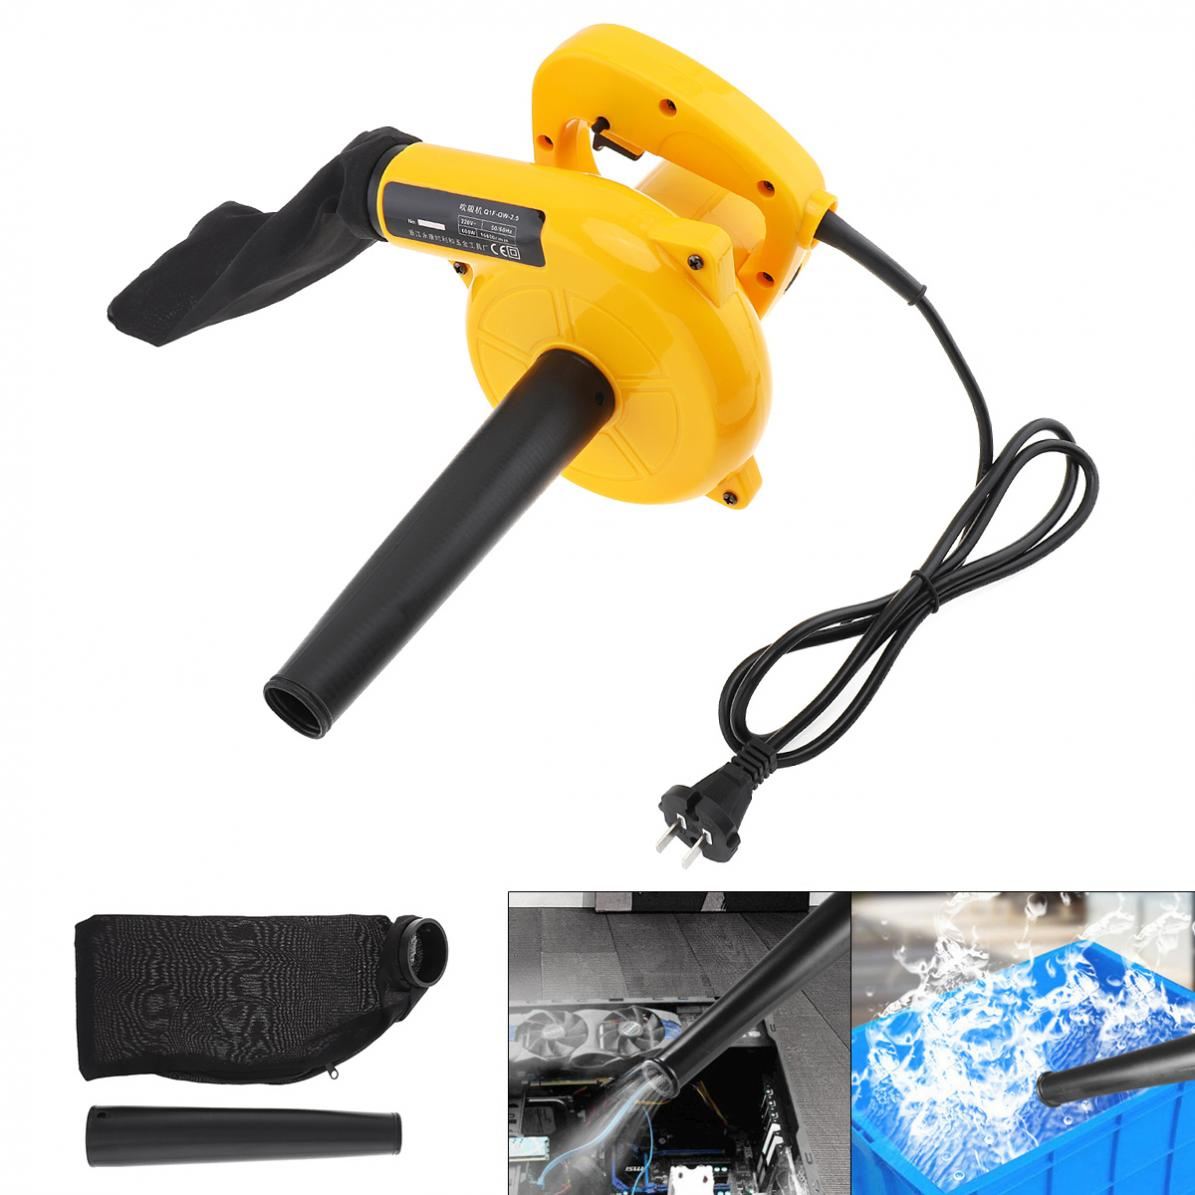 220V 600W 13000rpm Multifunctional Portable Electric Blower Duster Dust Collector Set with Suction Head and 1.2L Collecting Bag|Blowers| |  - title=